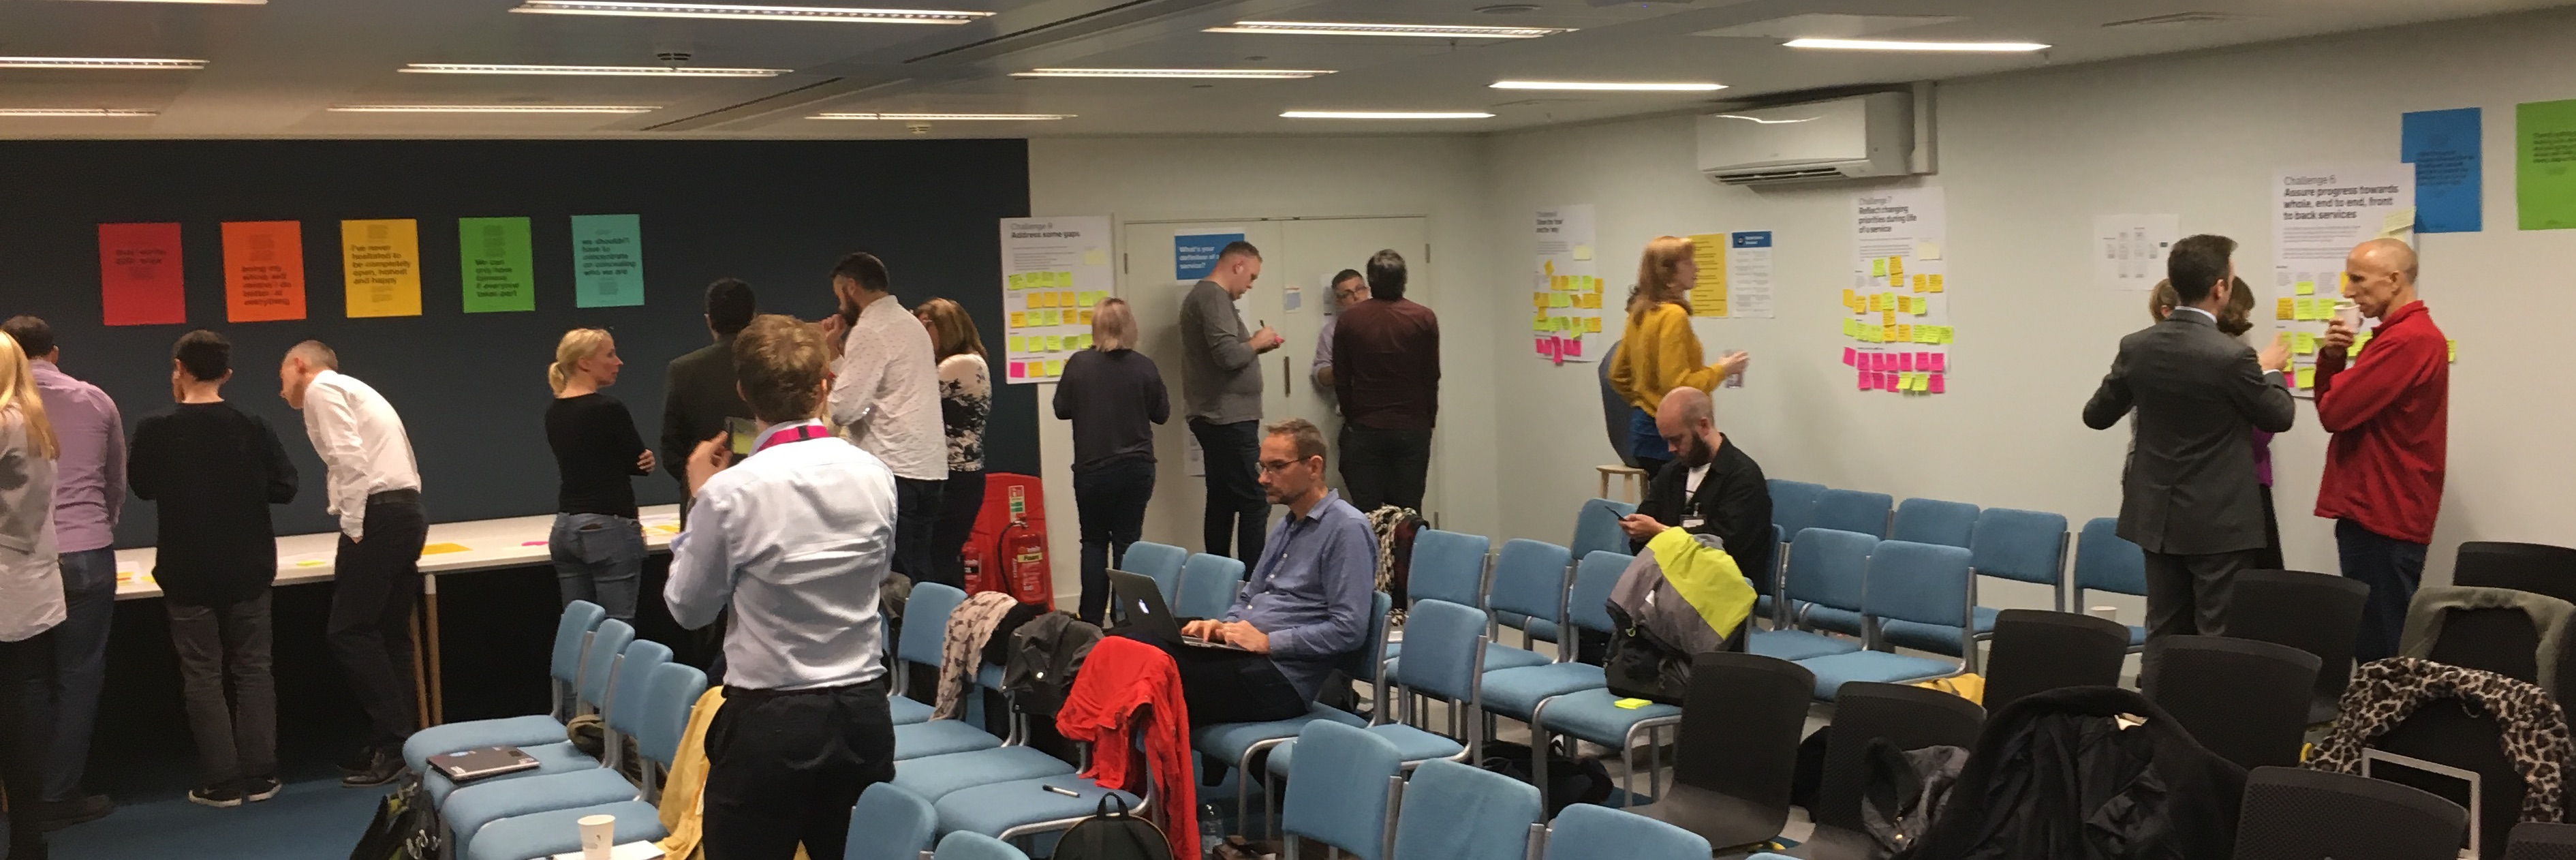 Photo of people from across government taking part in a workshop on the updated Service Standard